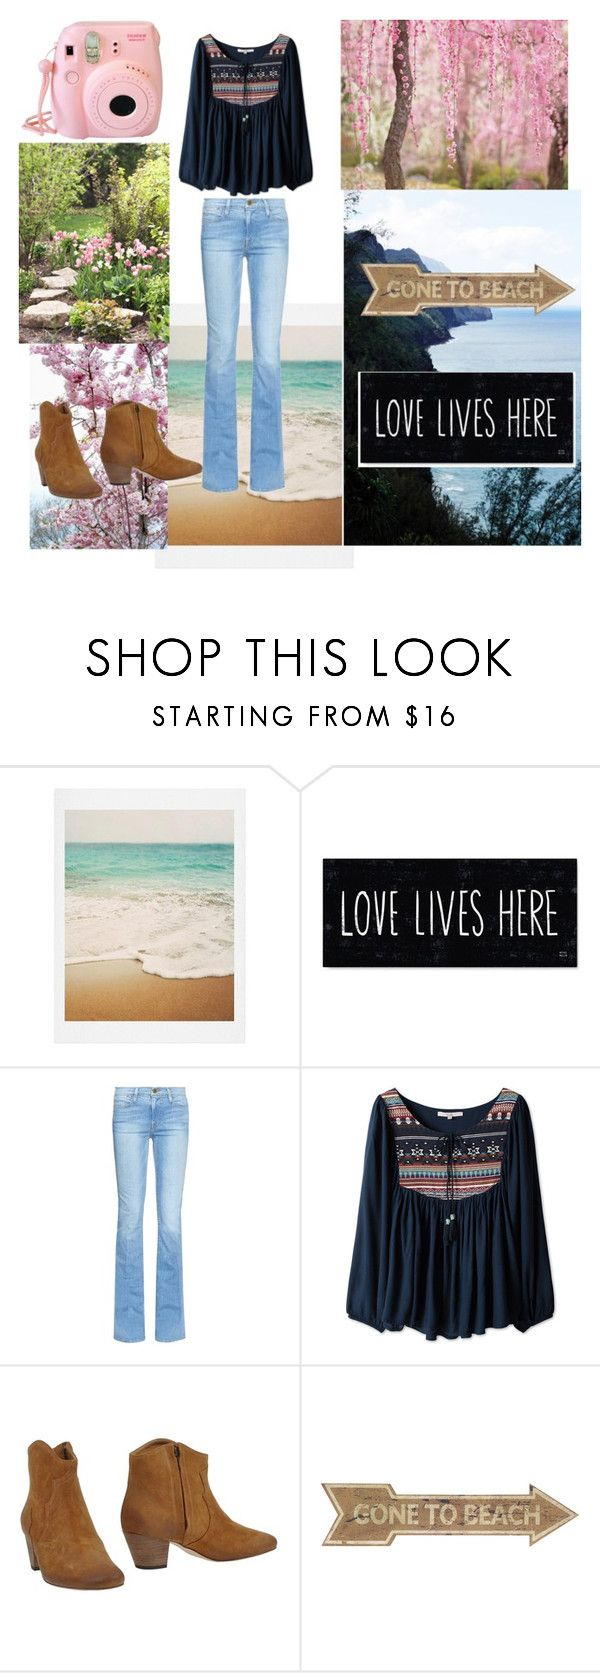 """""""Untitled #11"""" by mayafashoin ❤ liked on Polyvore featuring Dot & Bo, Frame Denim and Isabel Marant"""